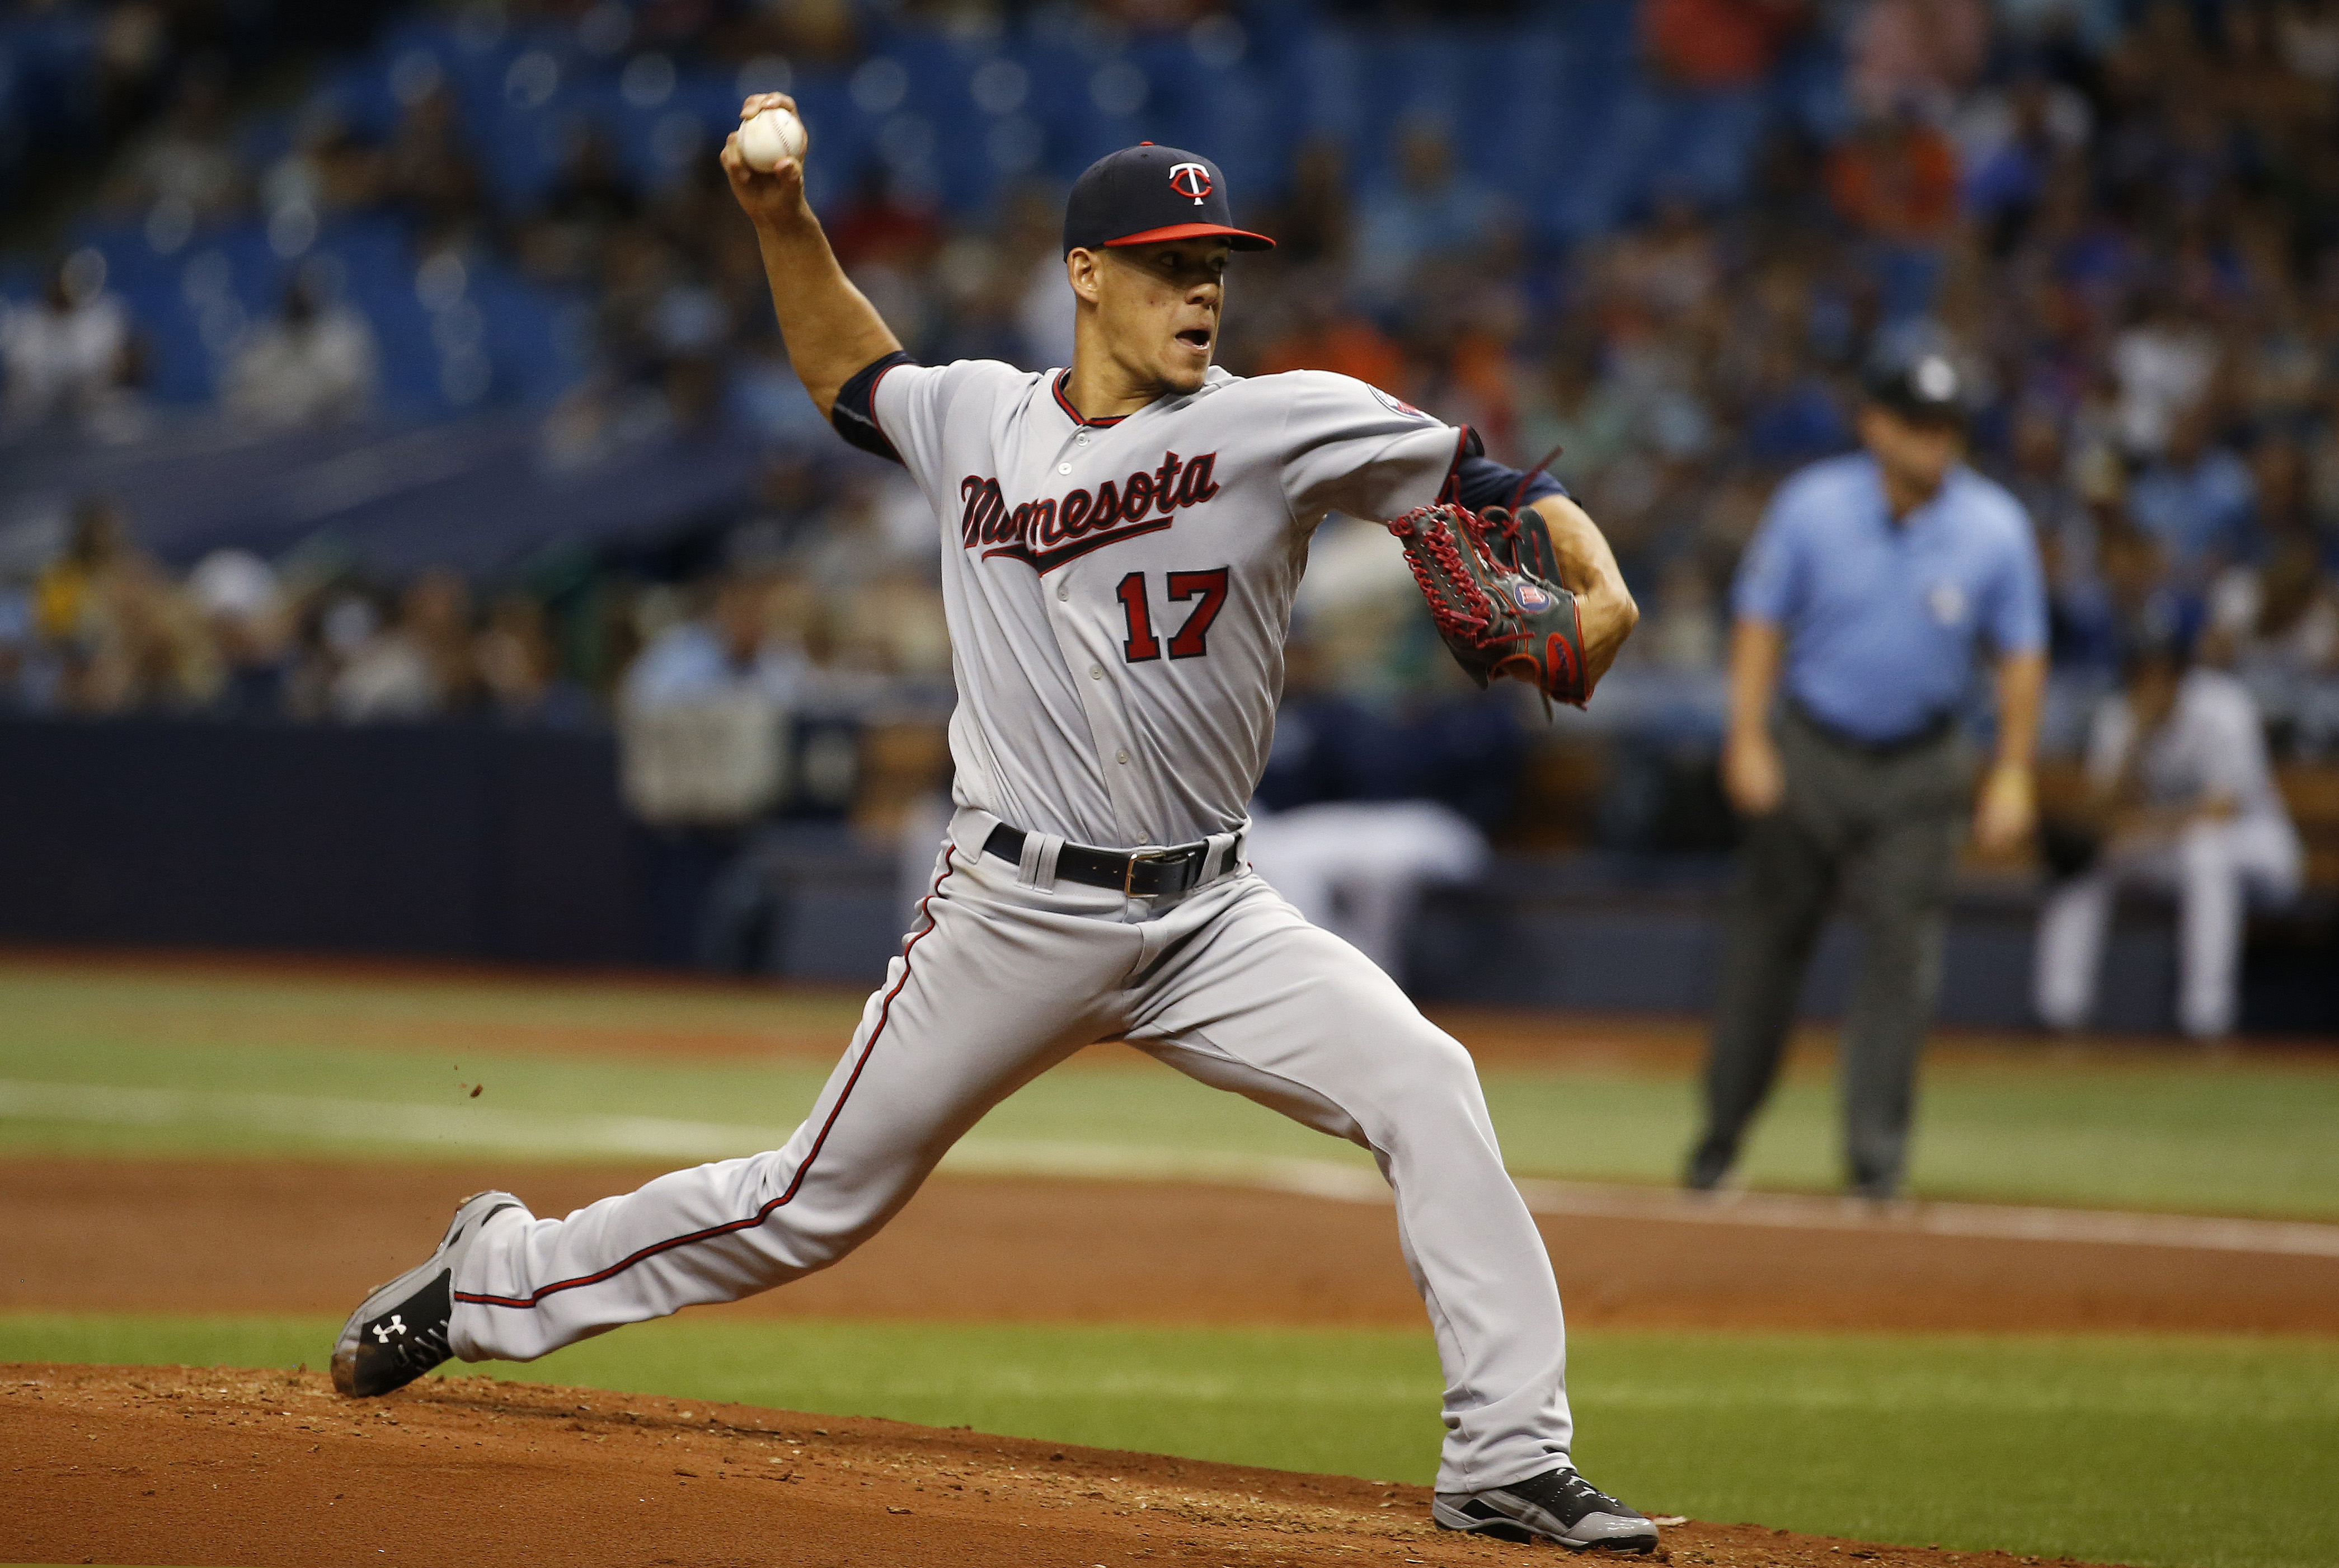 9427279-mlb-minnesota-twins-at-tampa-bay-rays